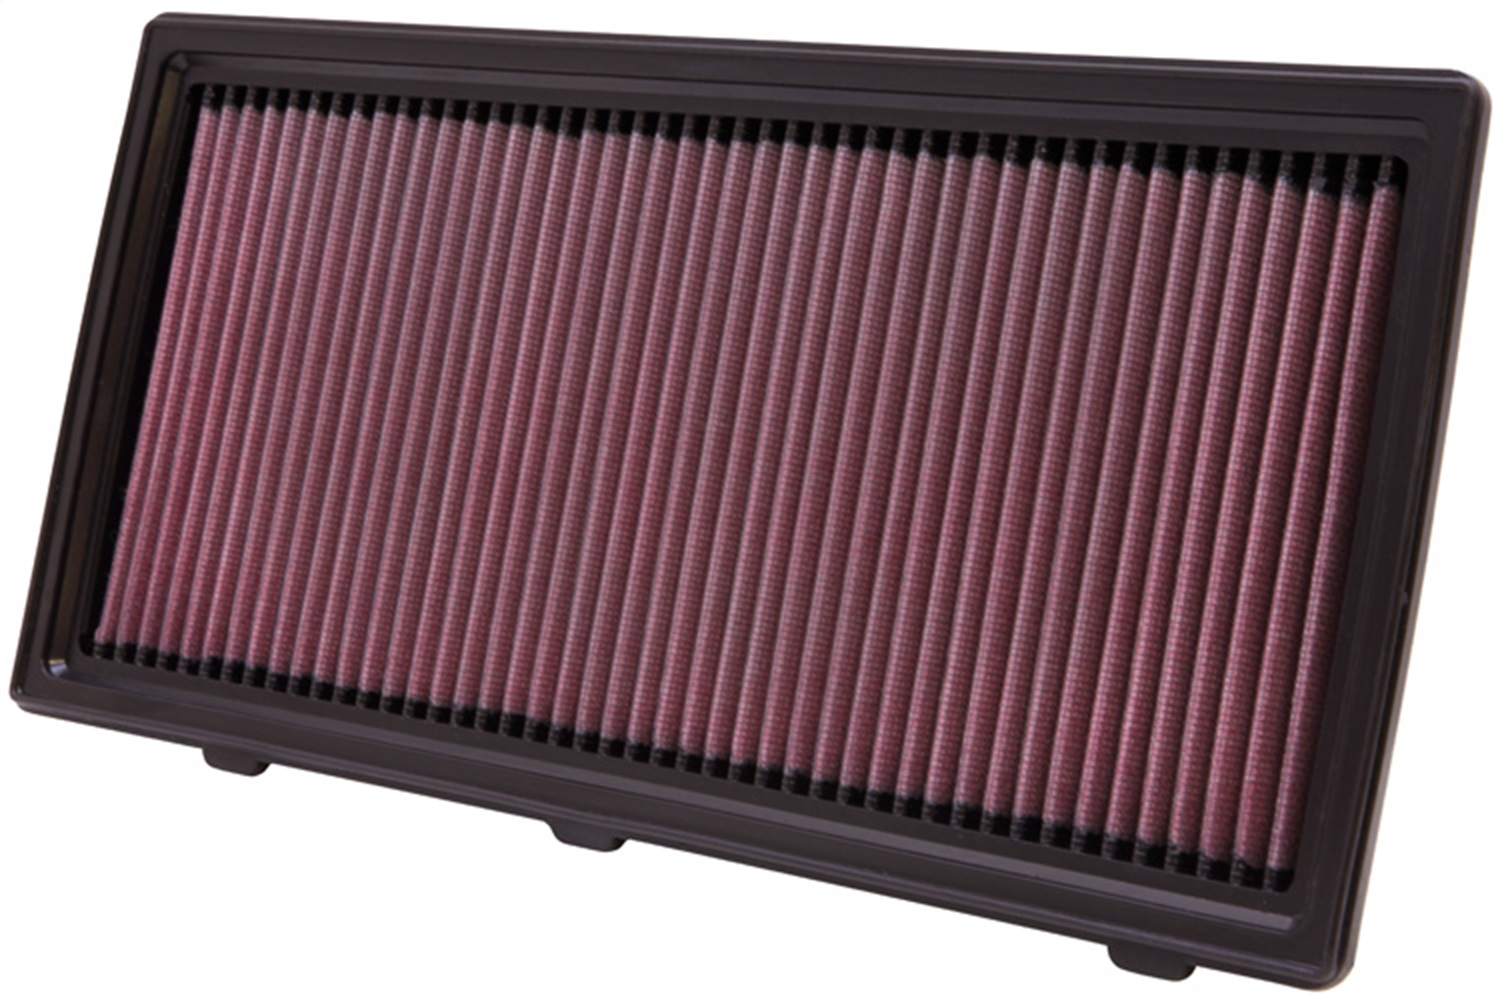 K&N Filters 33-2175 Air Filter Fits 97-11 Dakota Durango Raider 33-2175